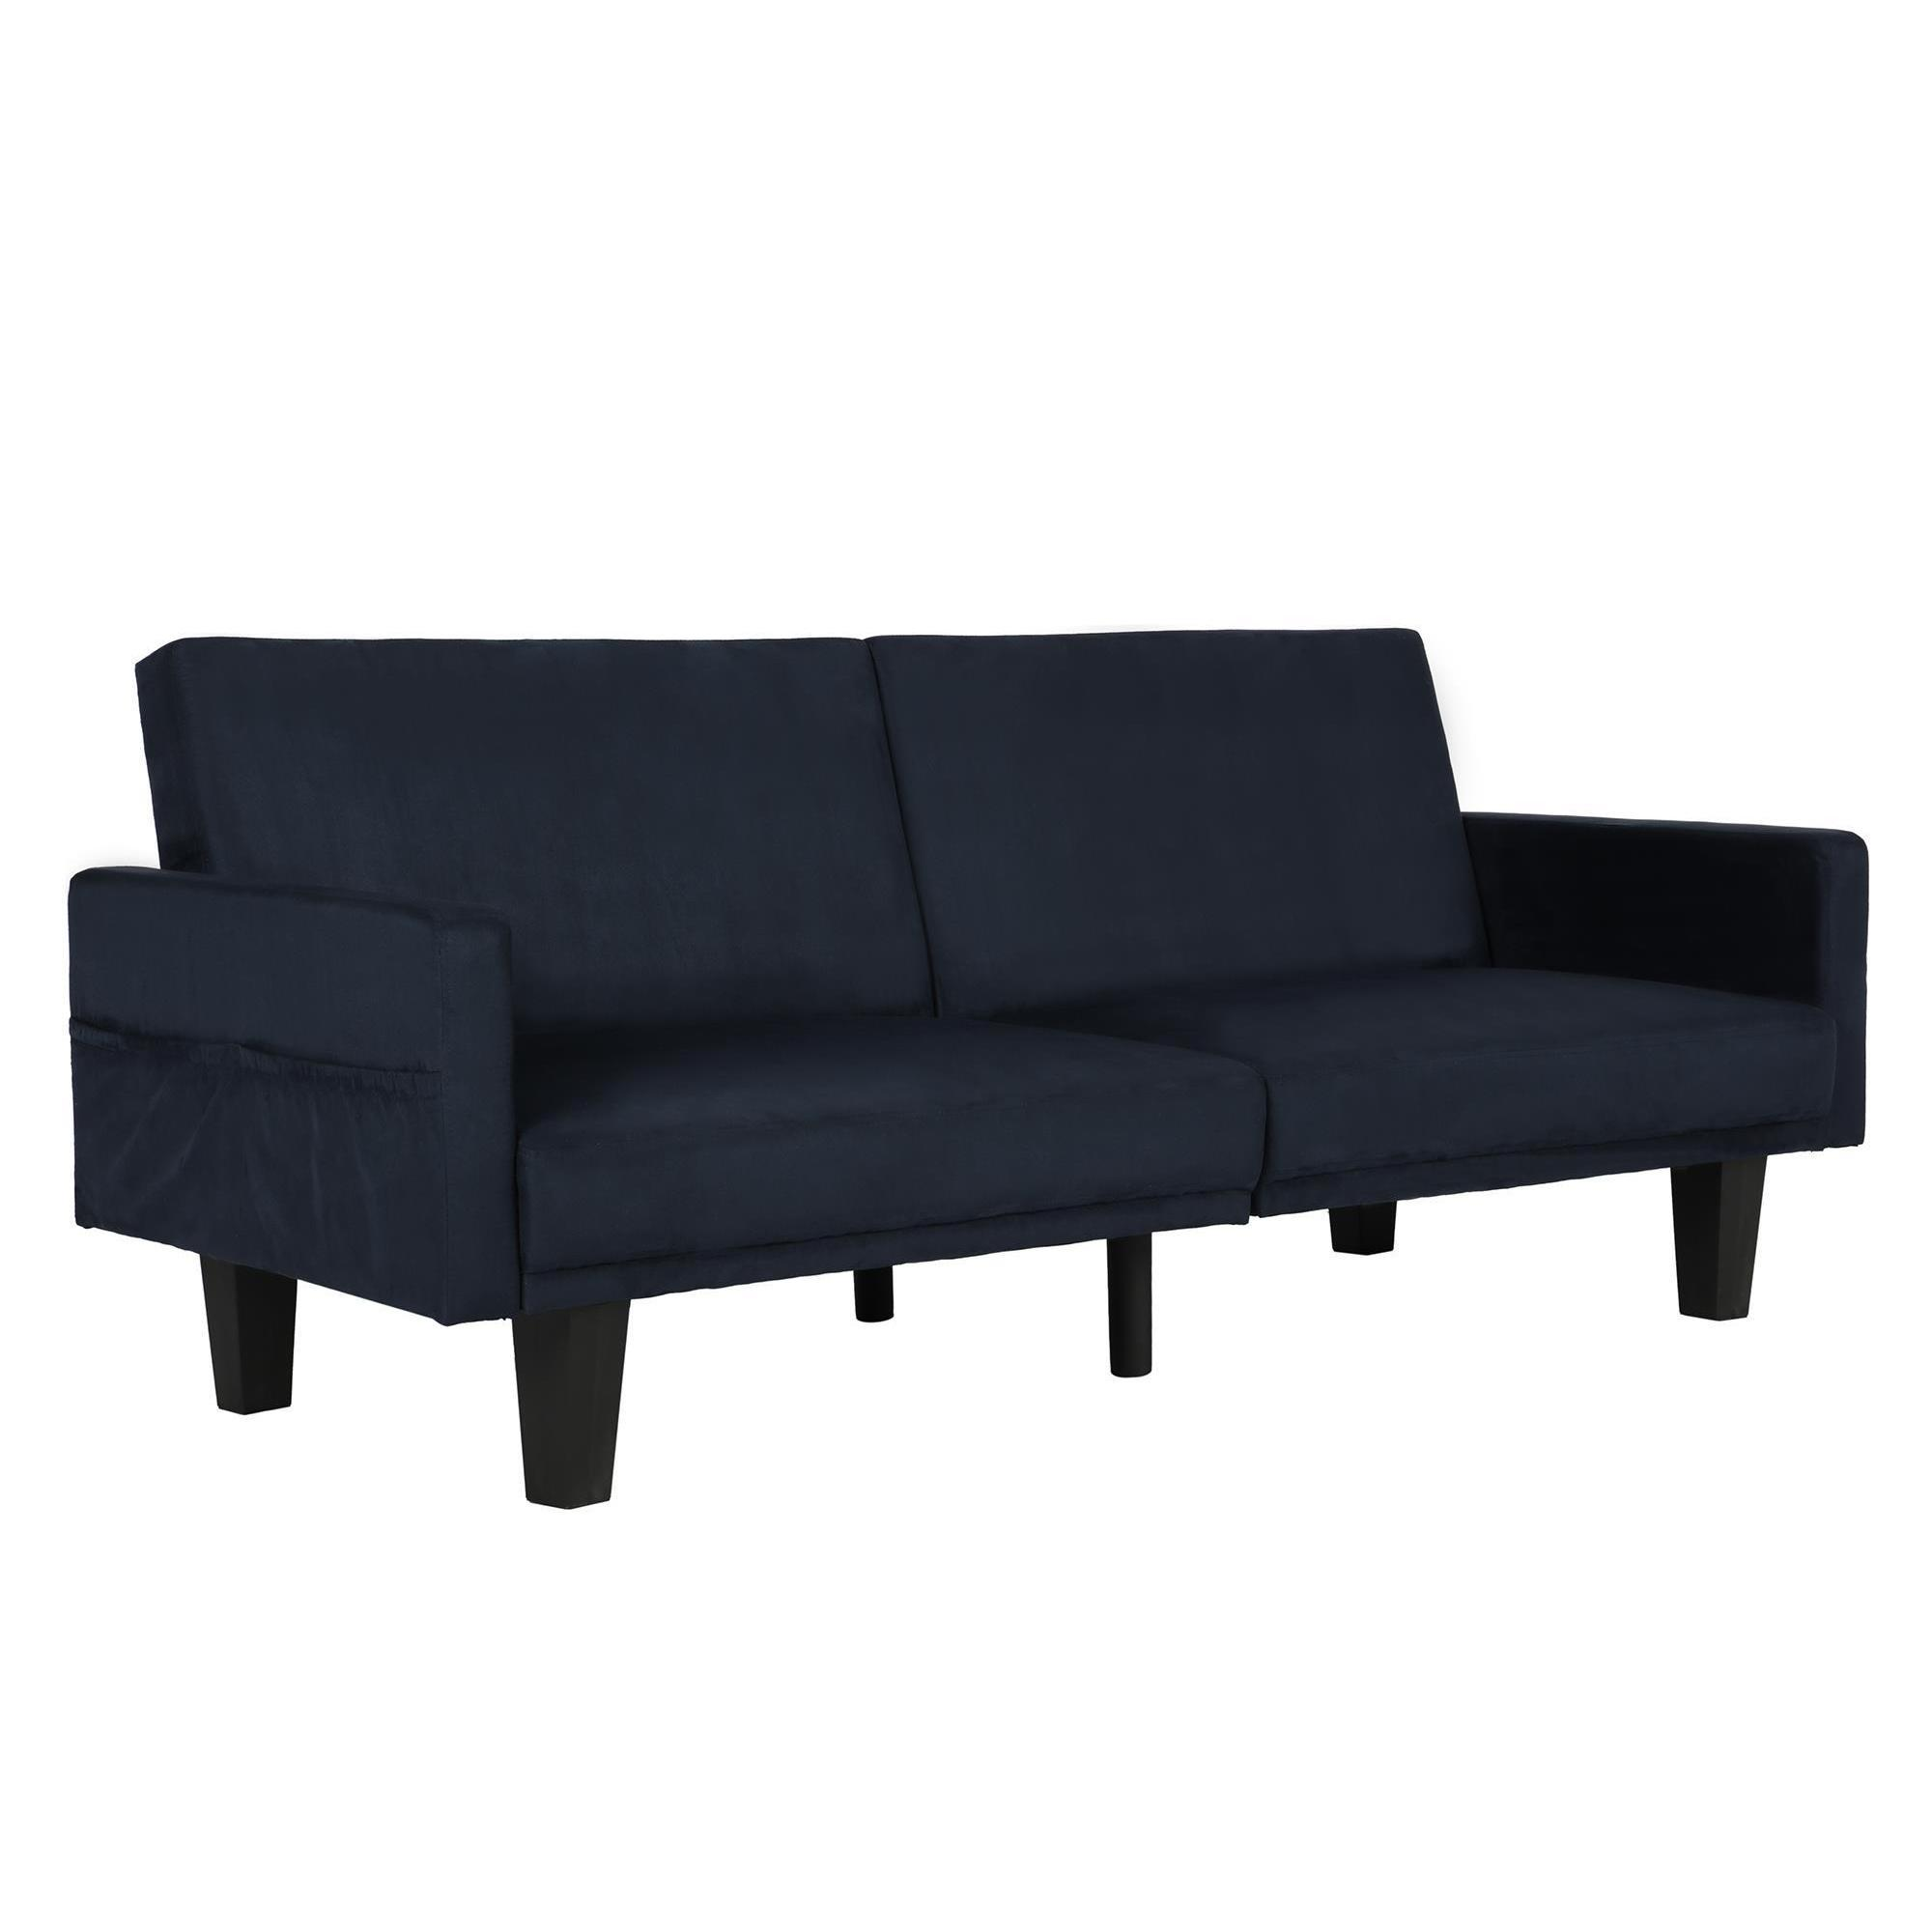 kmart walmart your of easily microfiber furniture epic to futon for bed sofa a convert